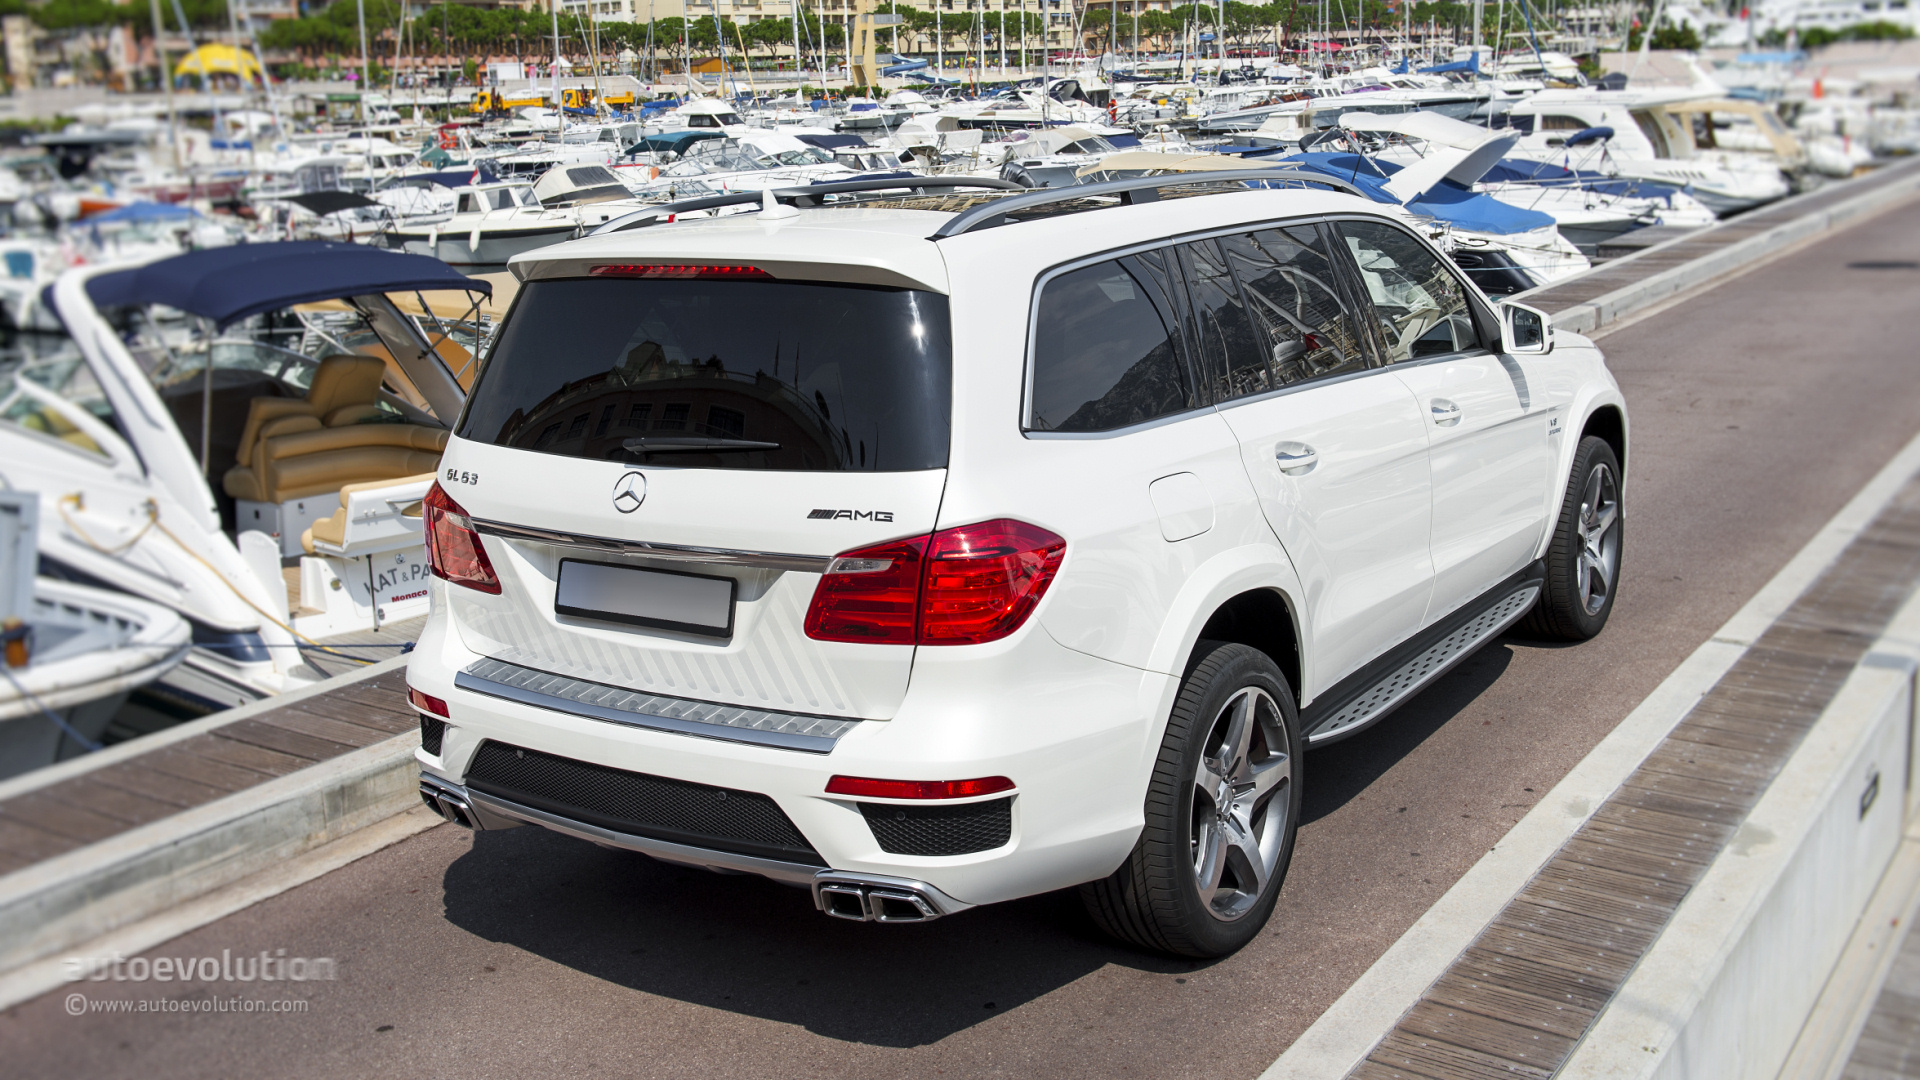 Mercedes benz gl 63 amg tested by autoevolution for How much is a 2014 mercedes benz